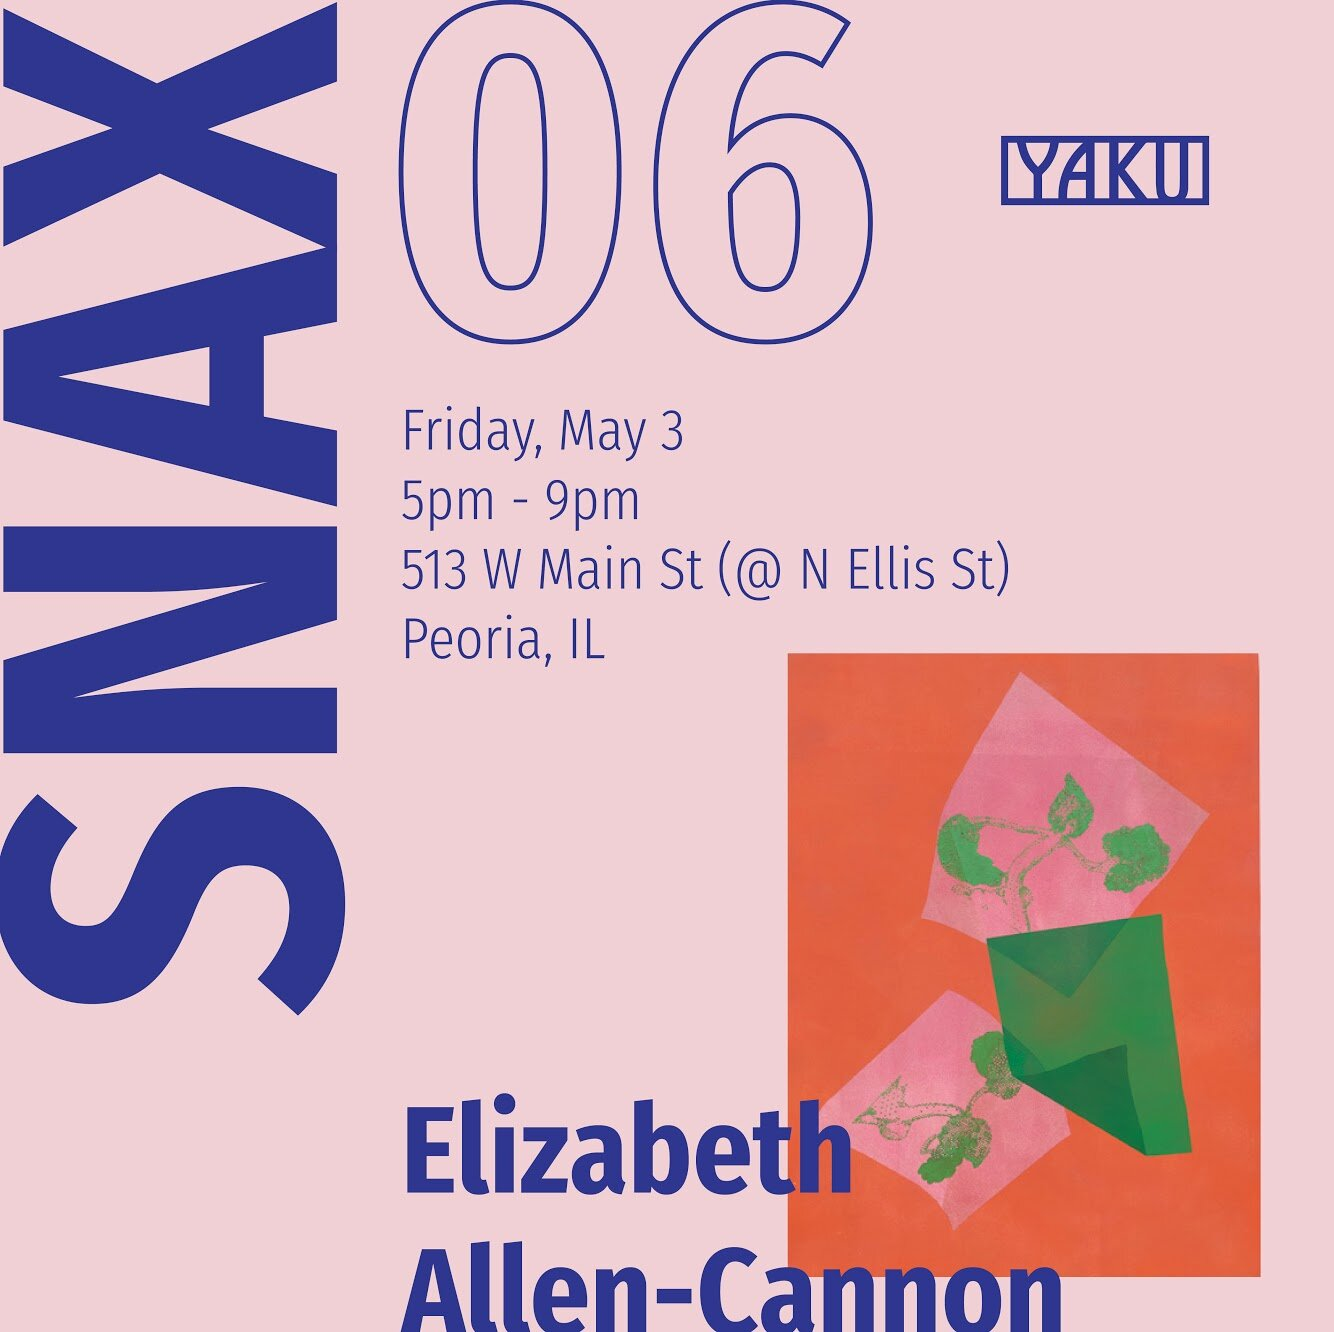 SNAX 06 - Presenting the Artist Elizabeth Allen-Cannon this Friday May 3rd from 5-9pm, 513 w Main St, Peoria IL